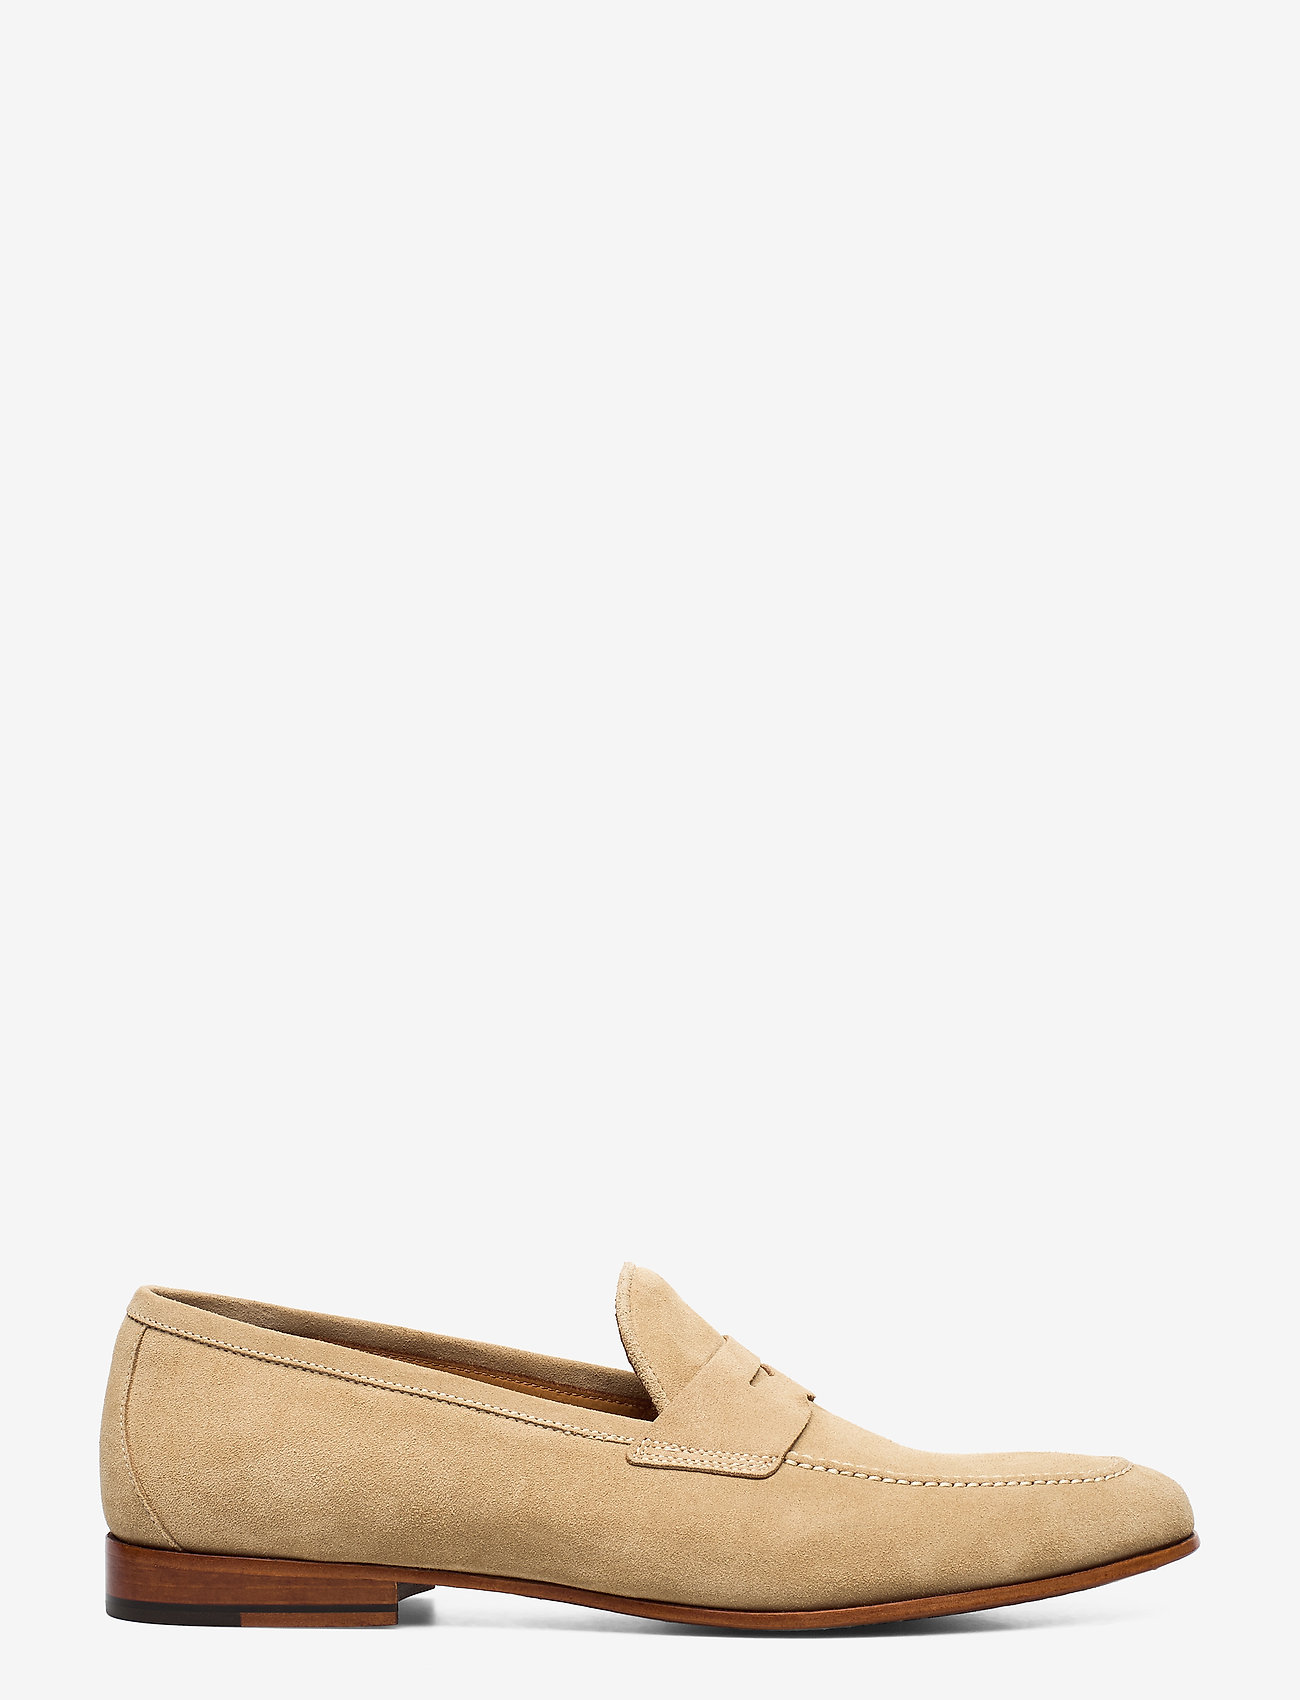 SAND - Footwear MW - F359 - loafers - light camel - 1